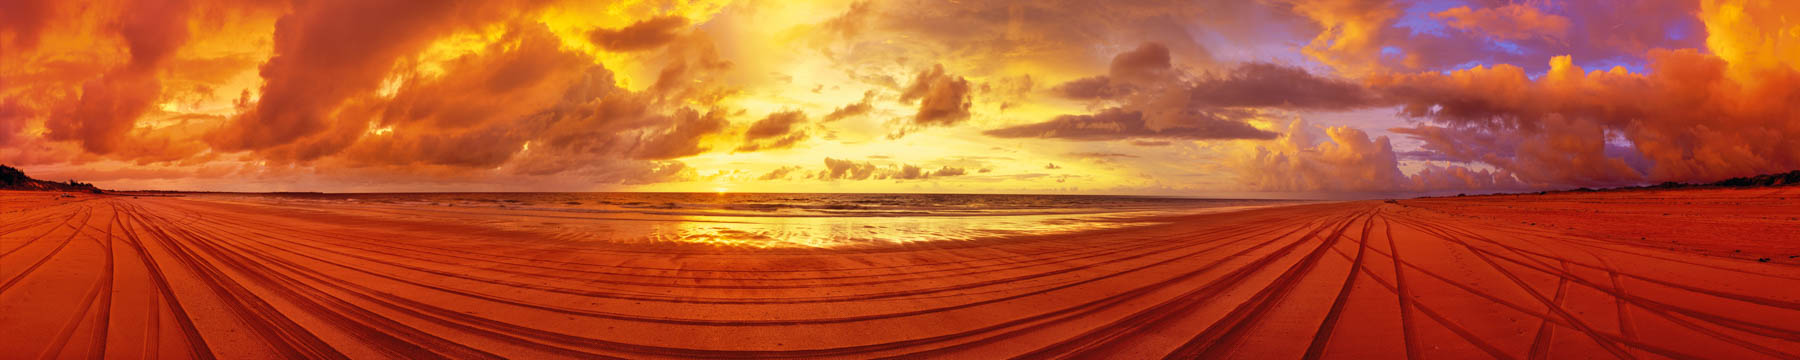 A rich, red sunset lights up the sand and sky at Cable Beach, Broome, WA, Australia.